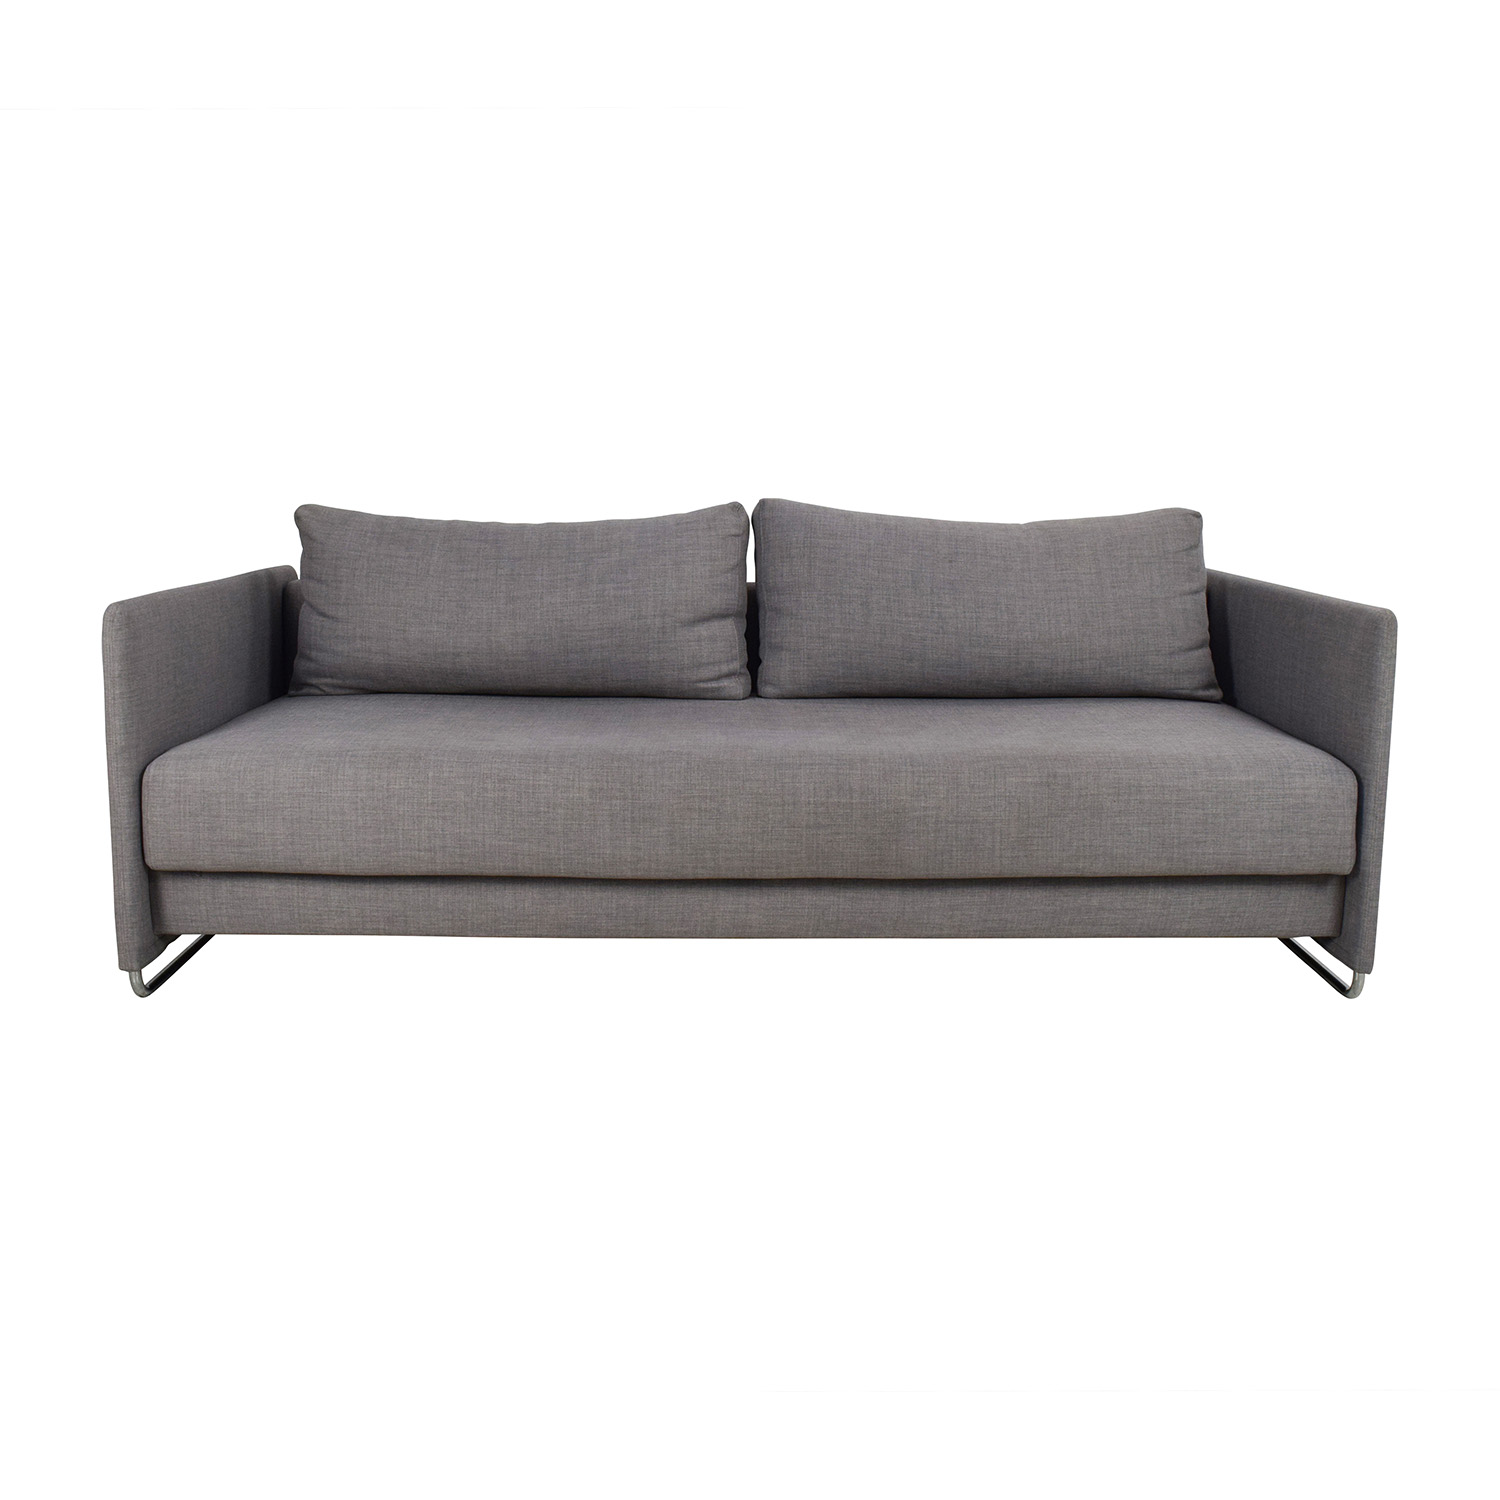 50 off cb2 cb2 tandom grey sleeper sofa sofas rh kaiyo com sectional bed sofas for sale corner bed sofas for sale